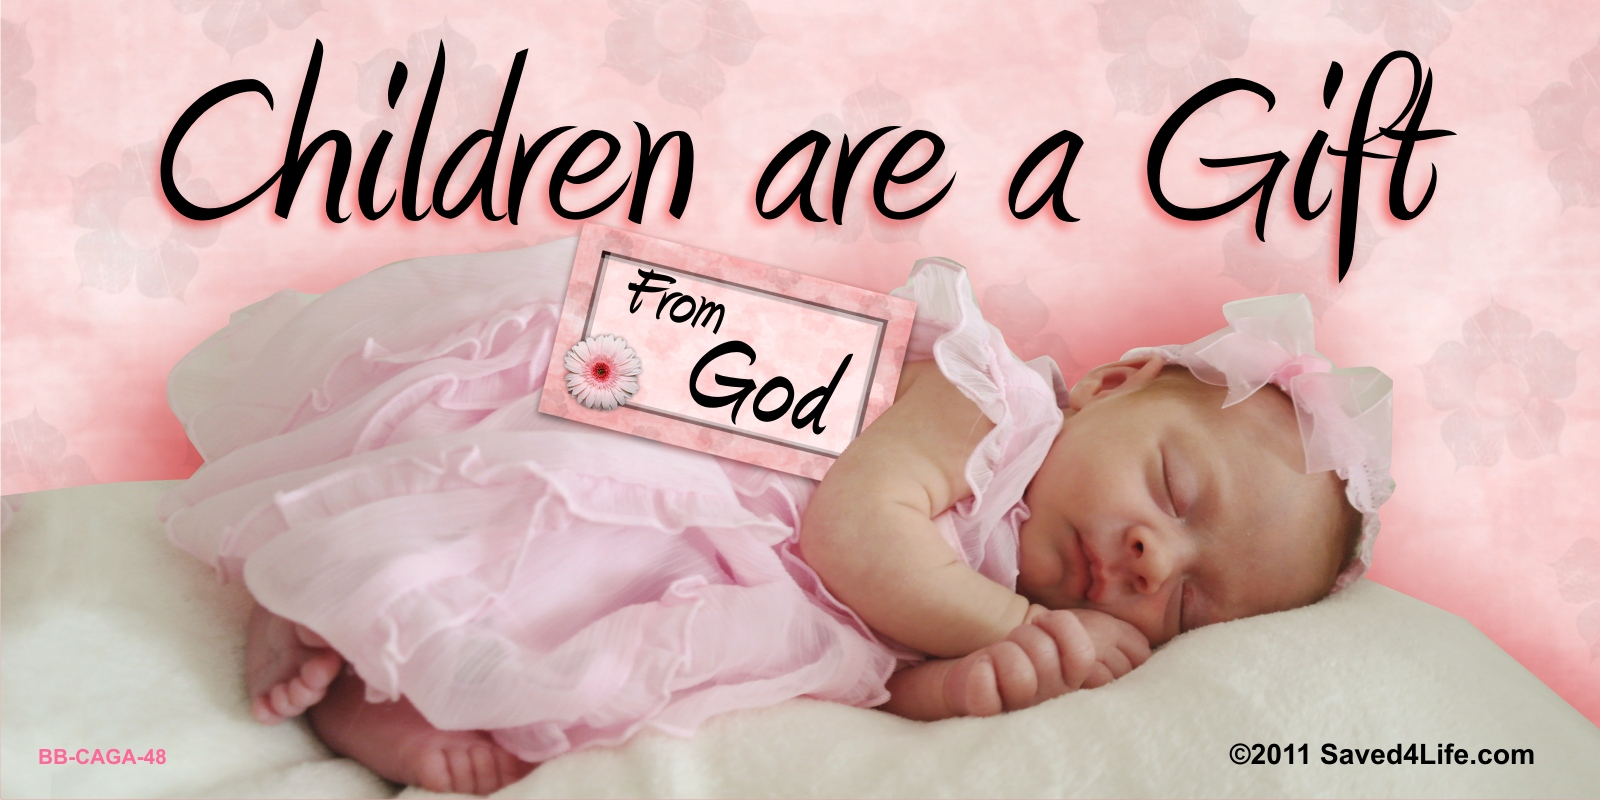 Children are a gift from god billboard children are a gift from god children are a gift from god billboard negle Gallery